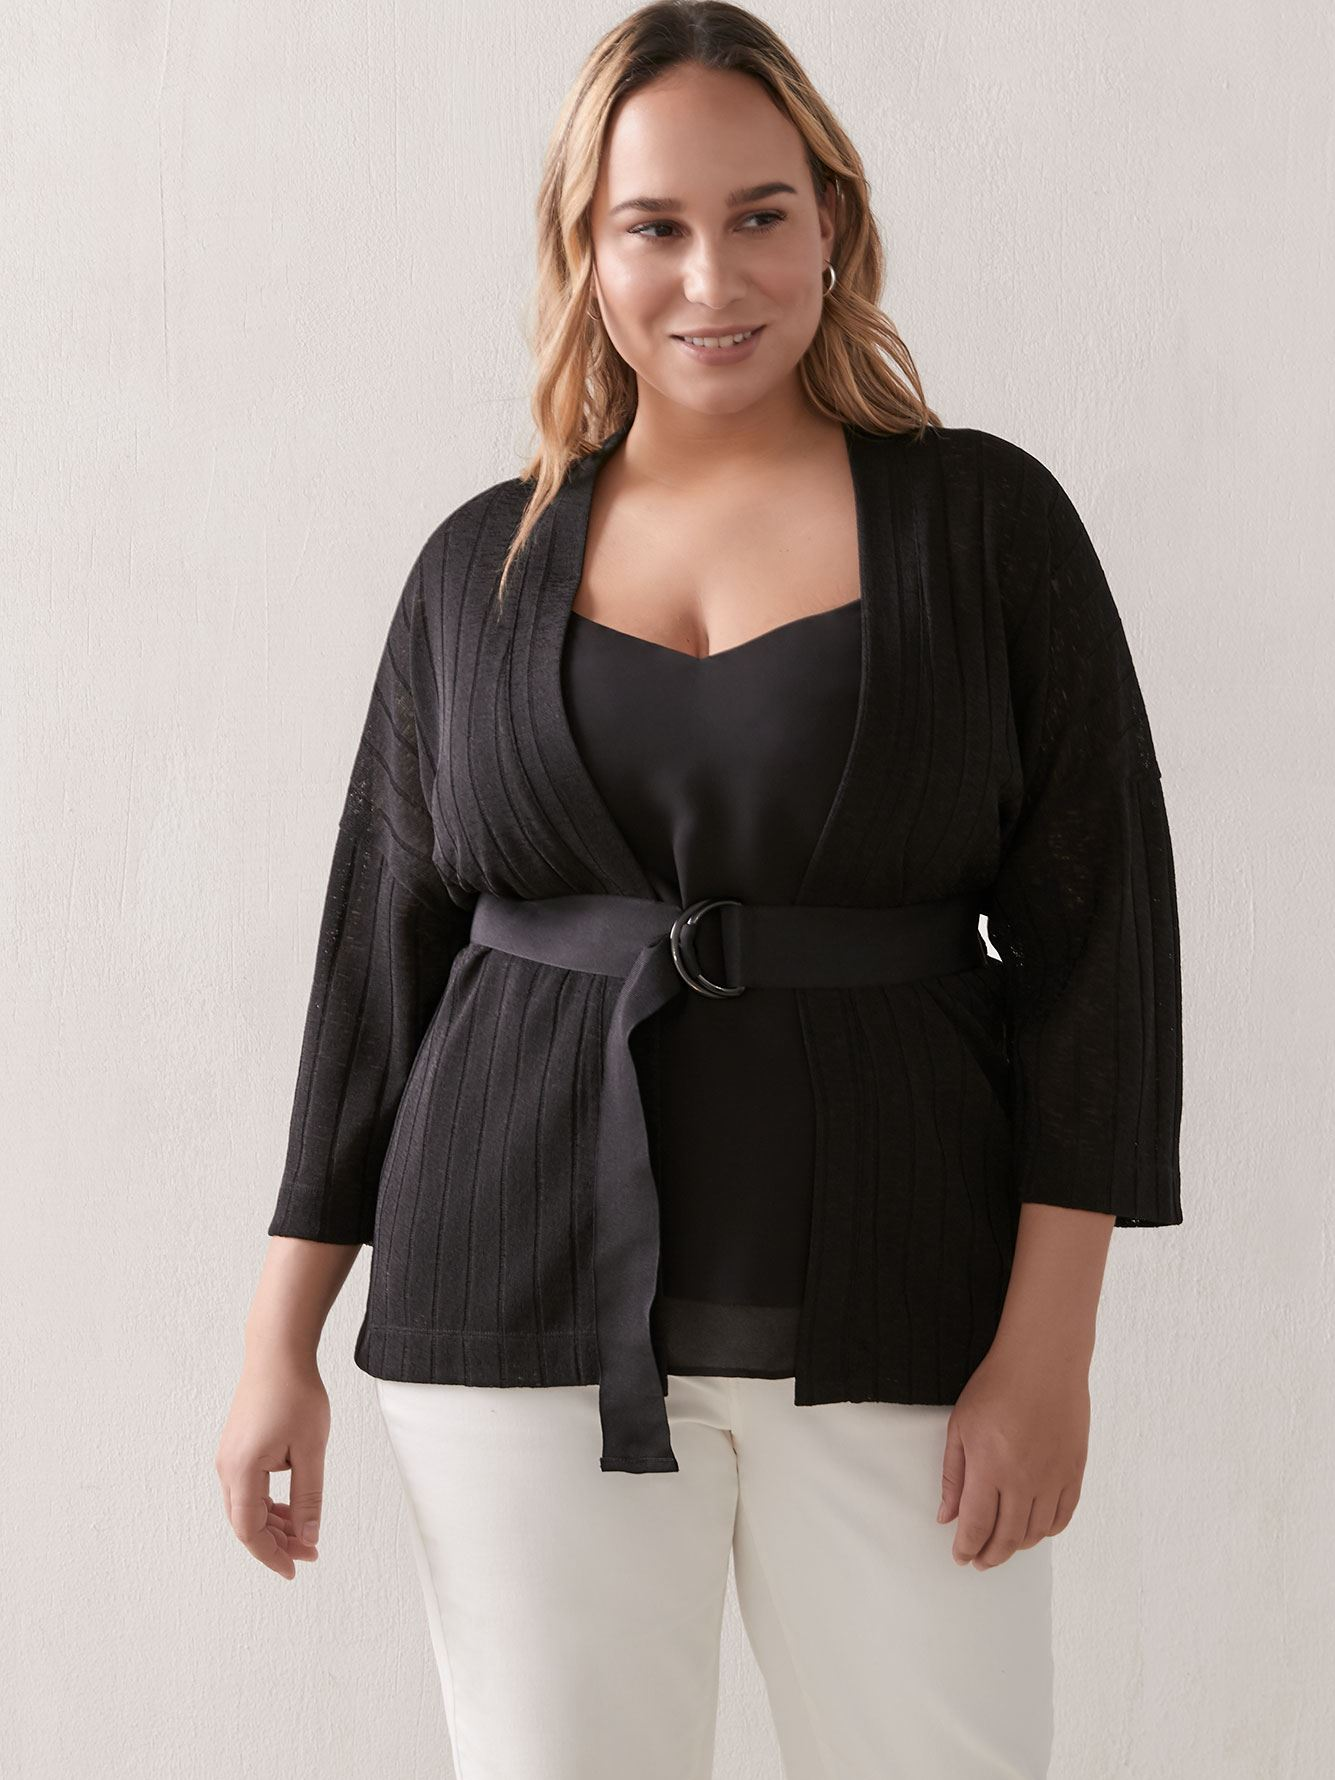 Wide-Sleeve Belted Cardigan - Addition Elle 11